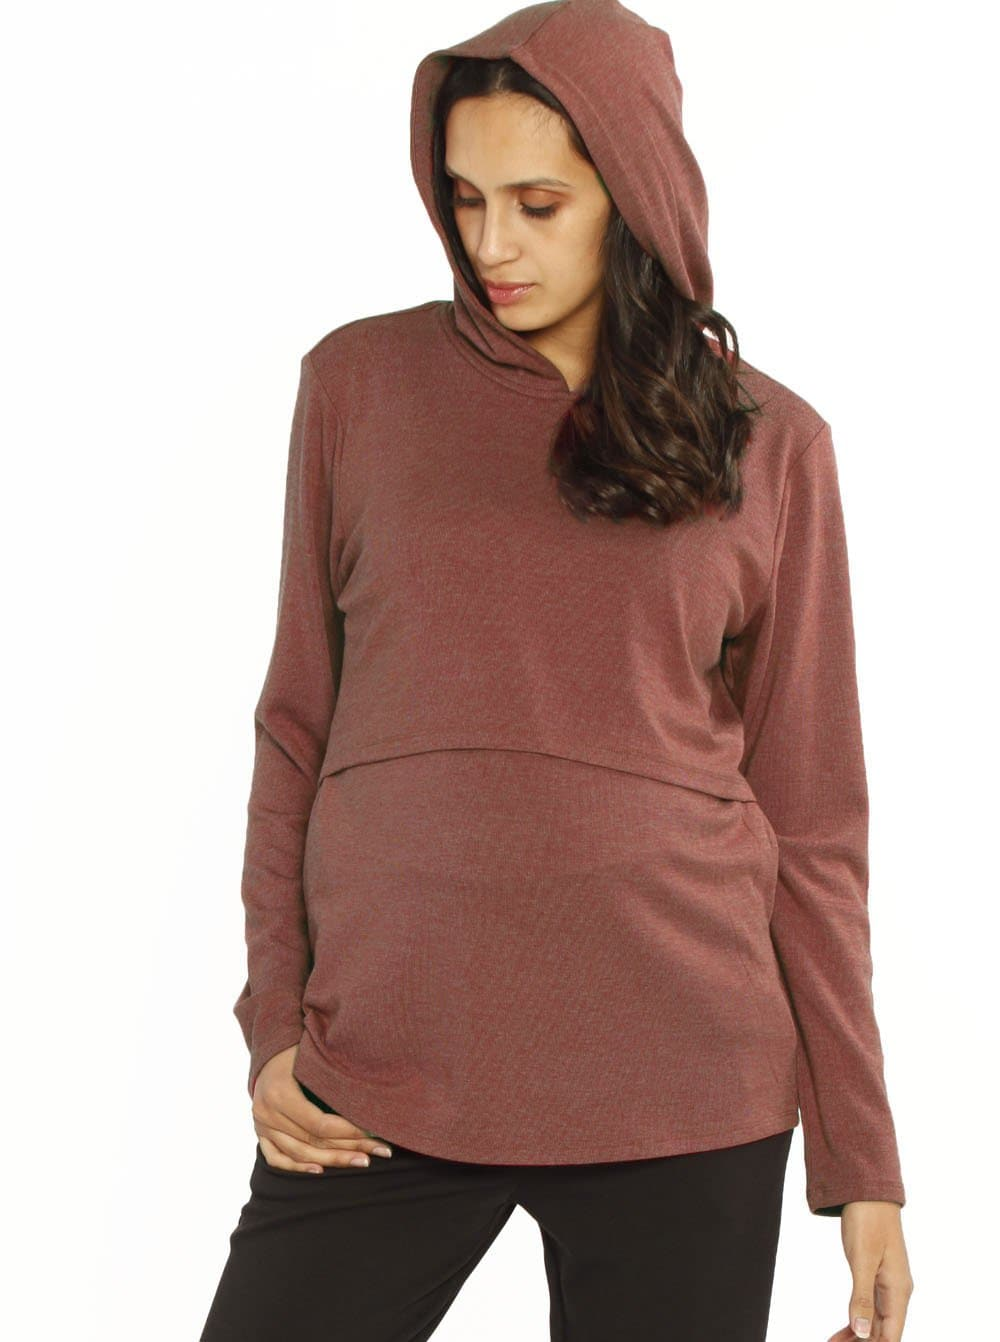 Nursing Hoodie Breastfeeding Top - Marl Red